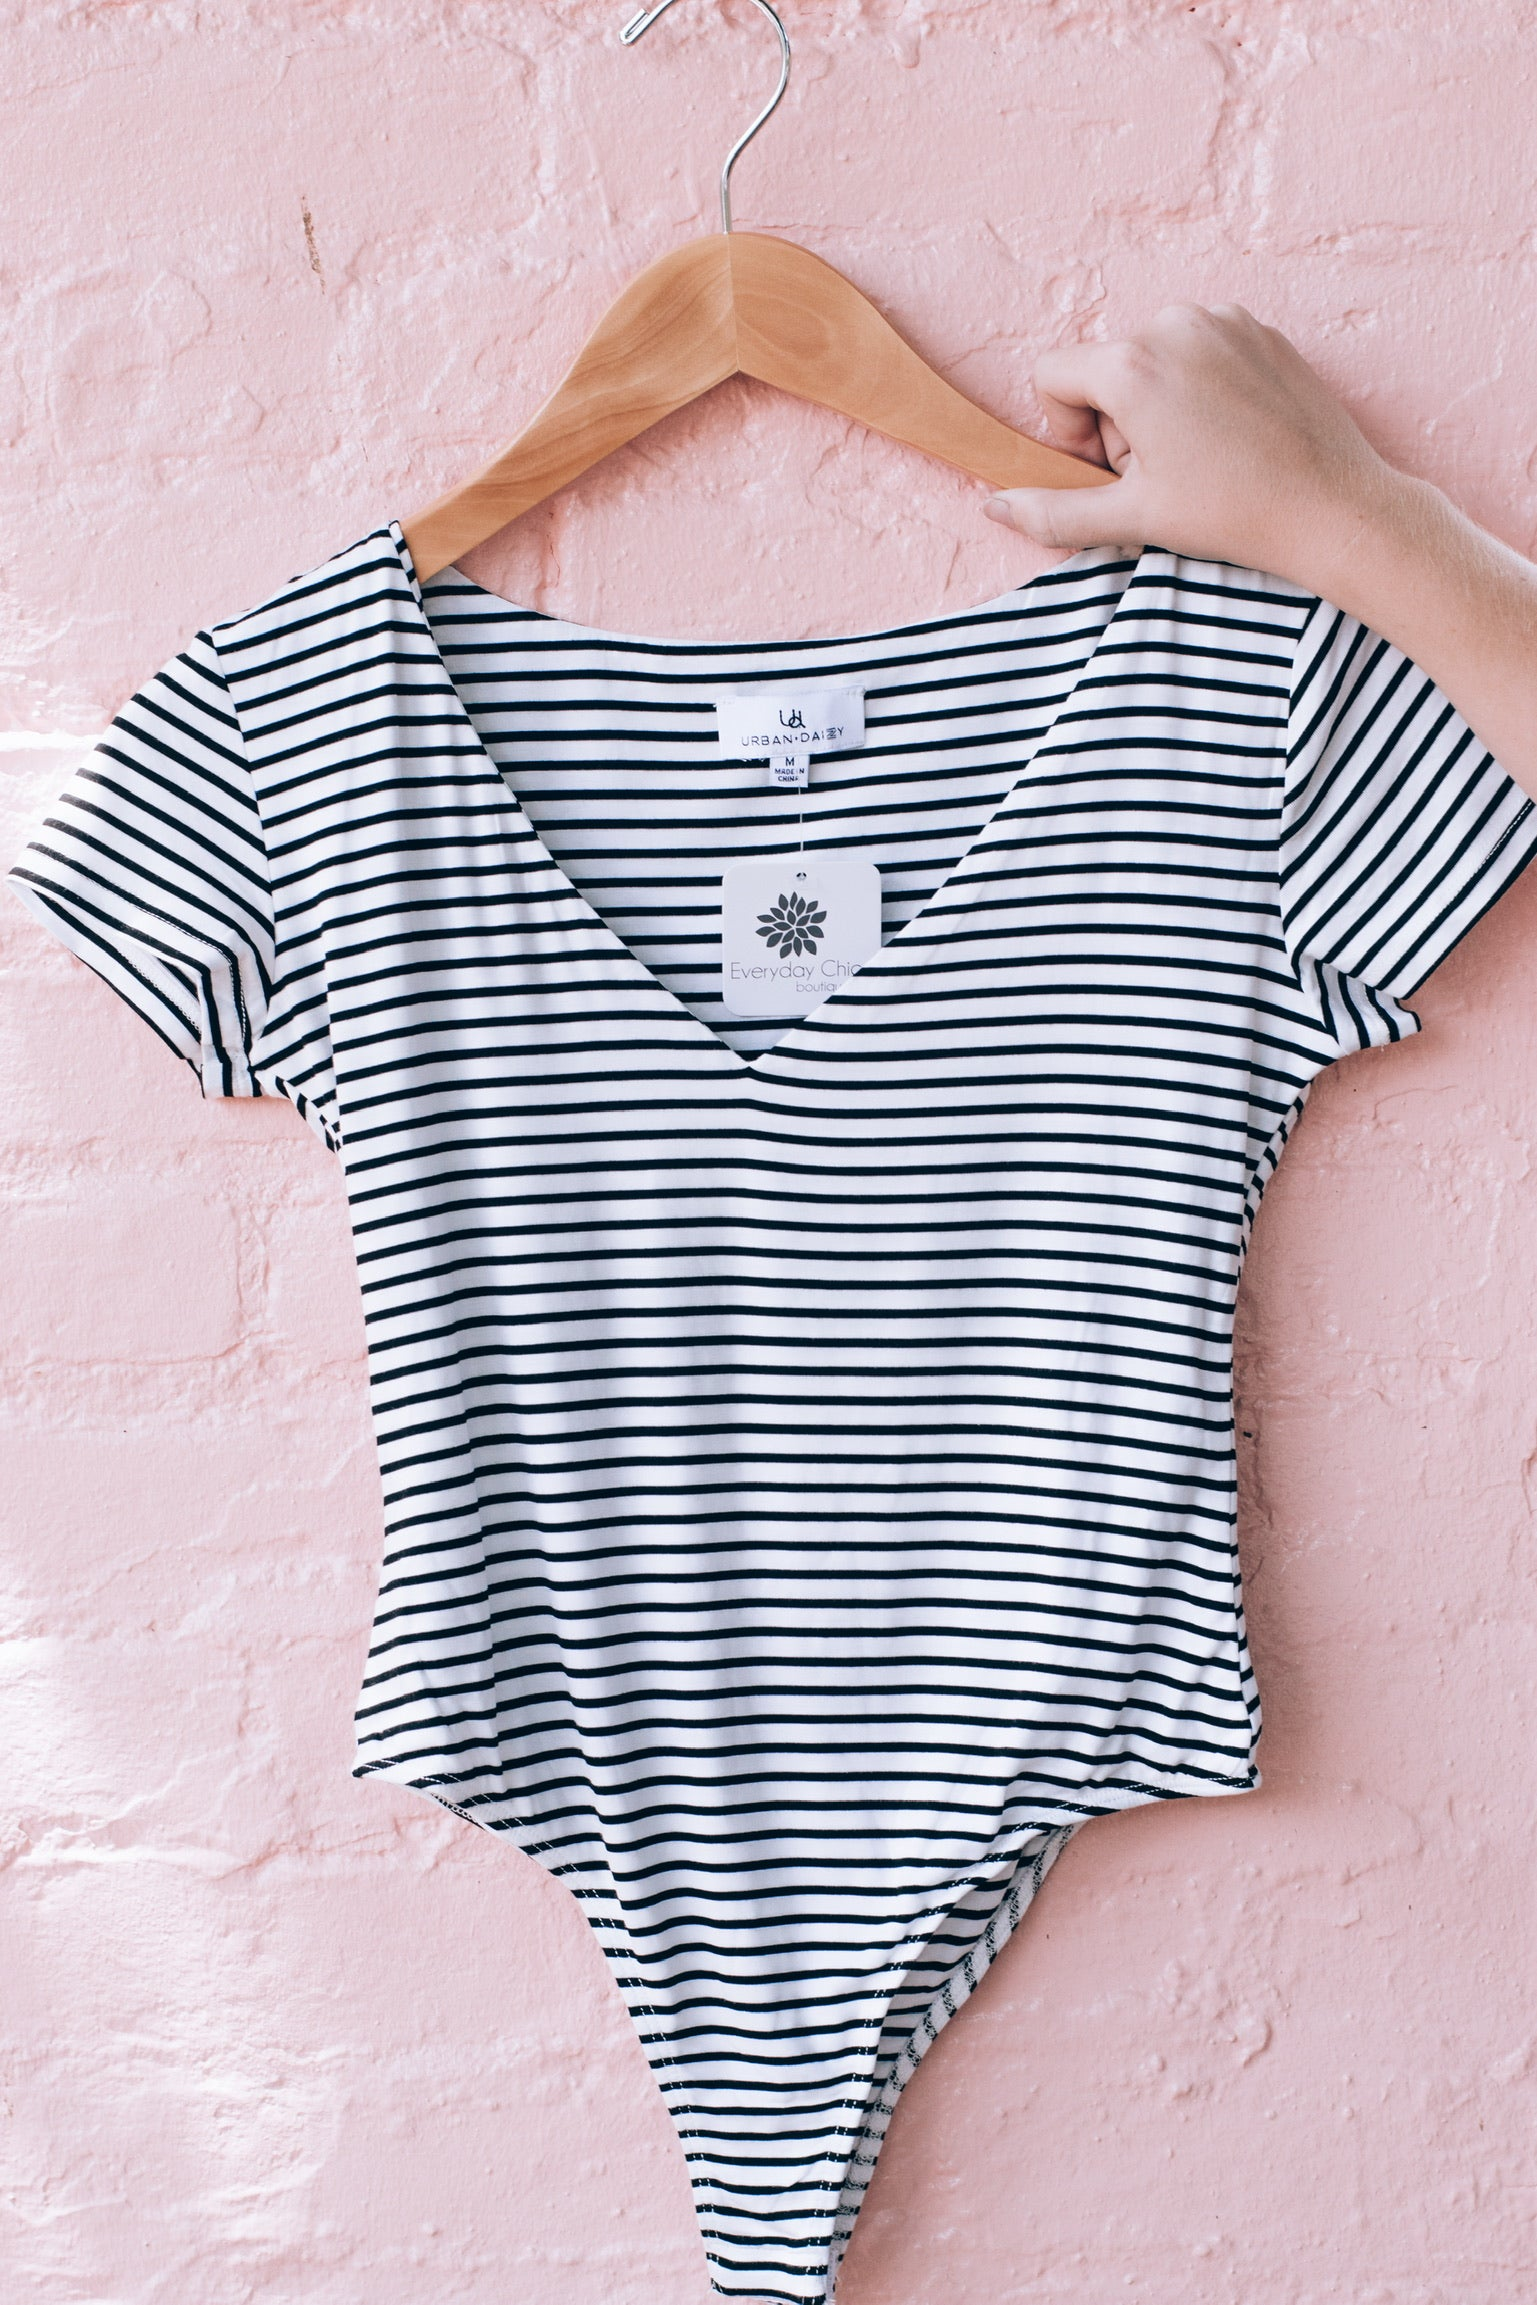 Cassie Cool Bodysuit, Striped